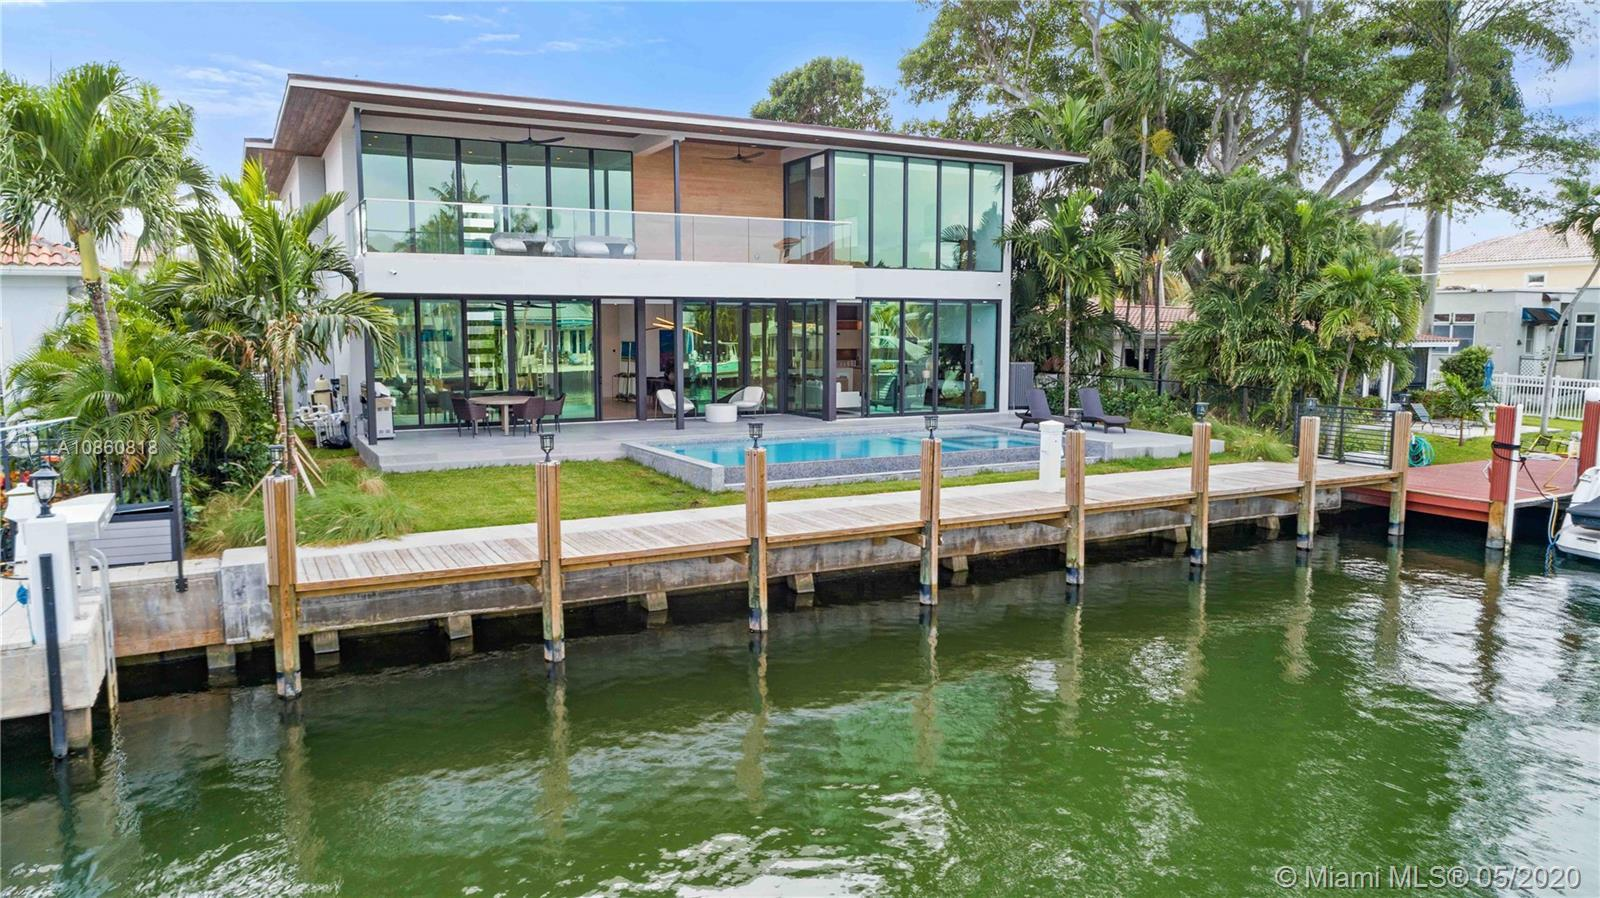 New construction, Sophisticated Luxurious 2 story Modern Design on 70 Ft. of deep water. State of th